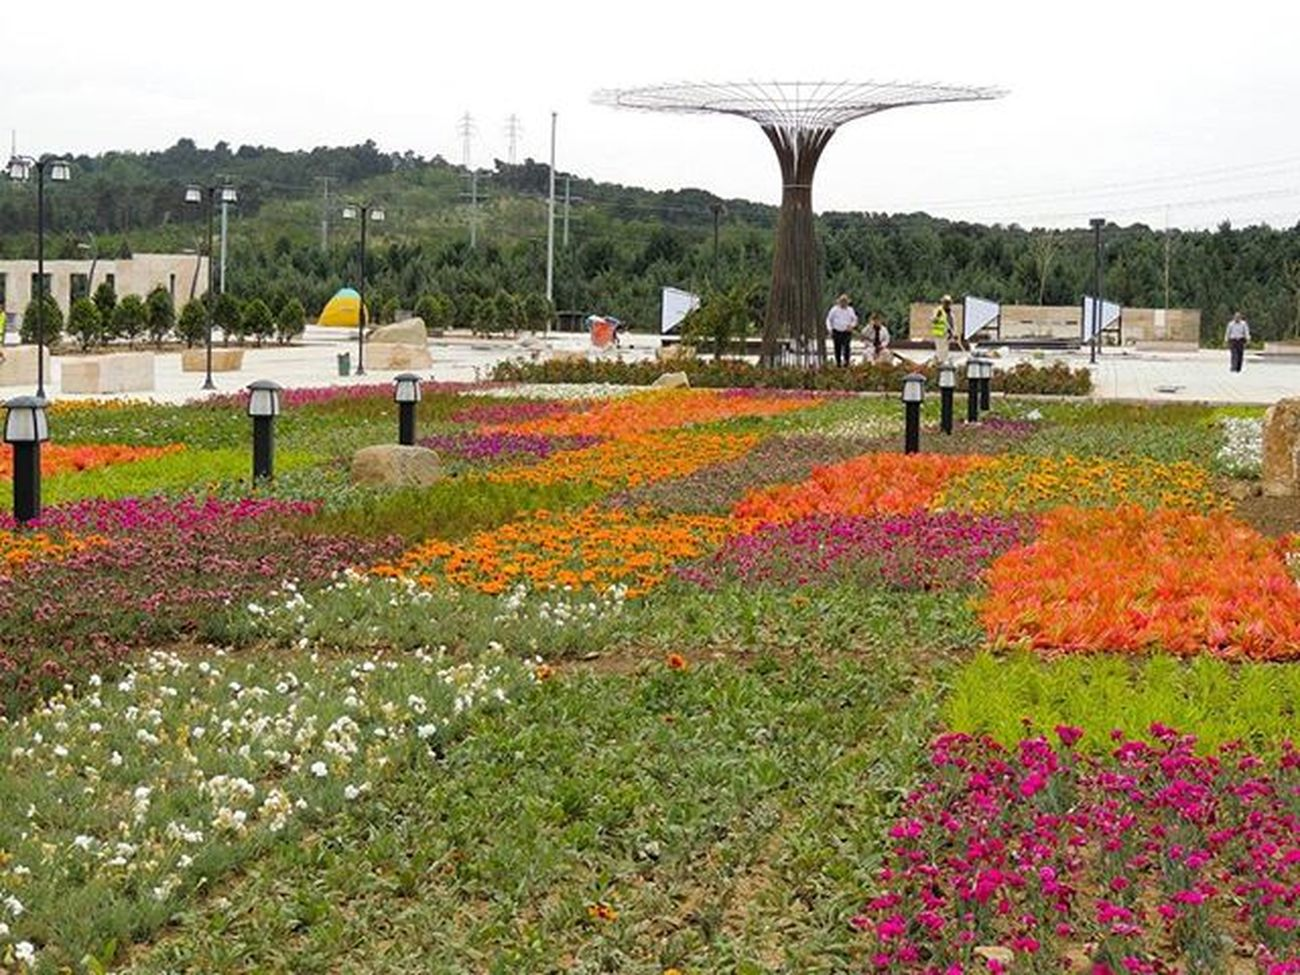 Lakeshore landscape of the Chitgarlake, the flower carpet, West part of the project. Last spring It was a ceremony of colors... Landscape architects: Morteza Adib, Maryam Yousefi @mymyousefi Photo by: mohammad Sharifi Year:2011-2014 Project Landscapeoffice Landscape ARCHITECT Konsept Concept Landscape ARCHITECT Landscapedesign Landscapearchitecturelife LandscapeArchitecture  Landscaper Landscapelovers Landscapeanddesign Landscaping Greenscape Urbanspaces Beauitfulgarden Peaple Gardens Chitgar Chitgarlake Iran Flowers Flower colors